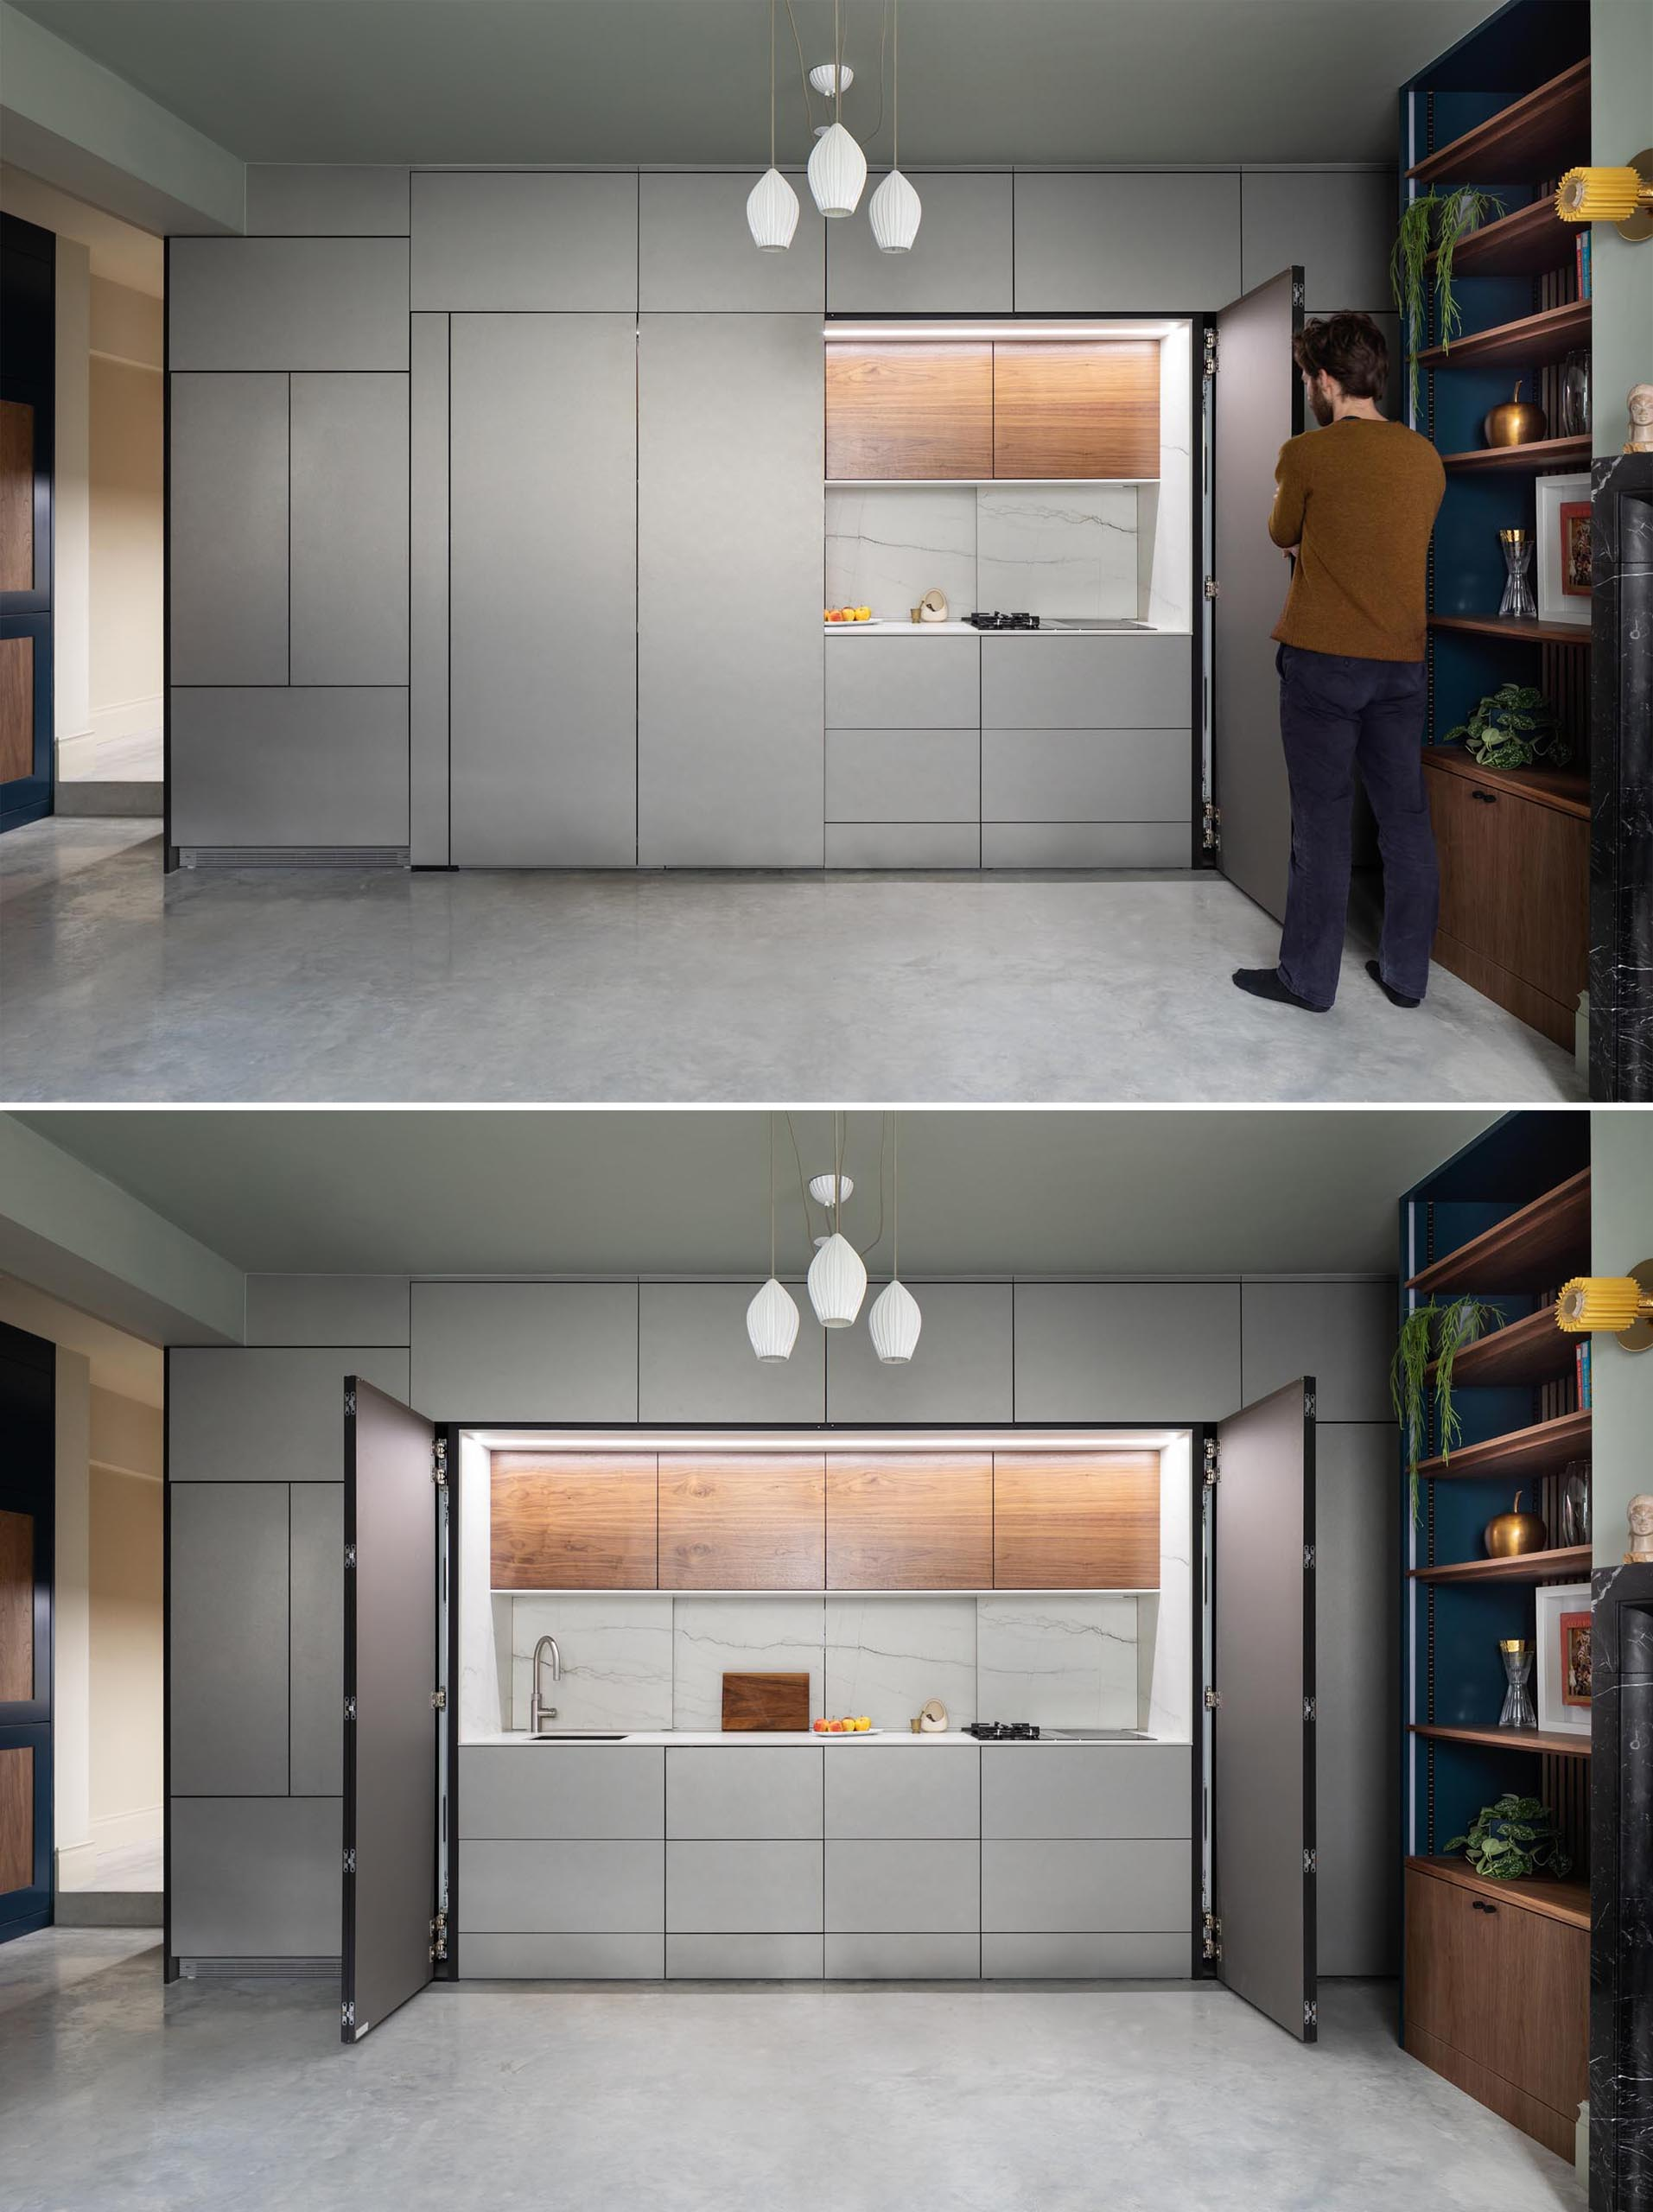 This kitchen, which can hidden away when not in use, is enclosed in muted metallic gray cabinets. The main section of the kitchen is accessed via a pair of folding doors.